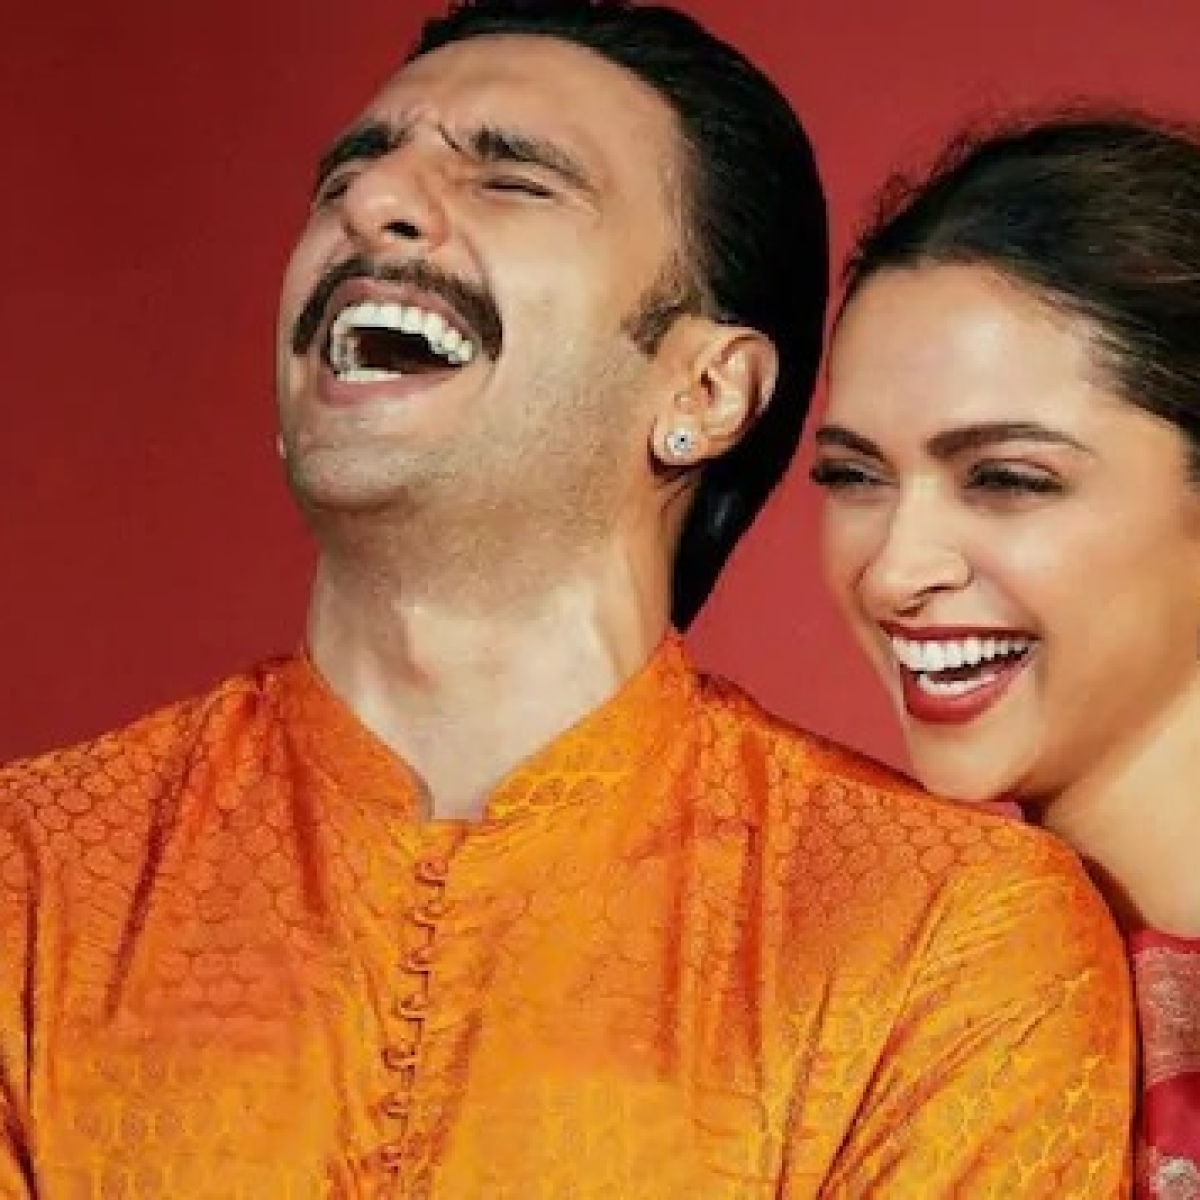 'Getting a whack tonight': Deepika's cheeky comment on Ranveer's latest Instagram post is unmissable